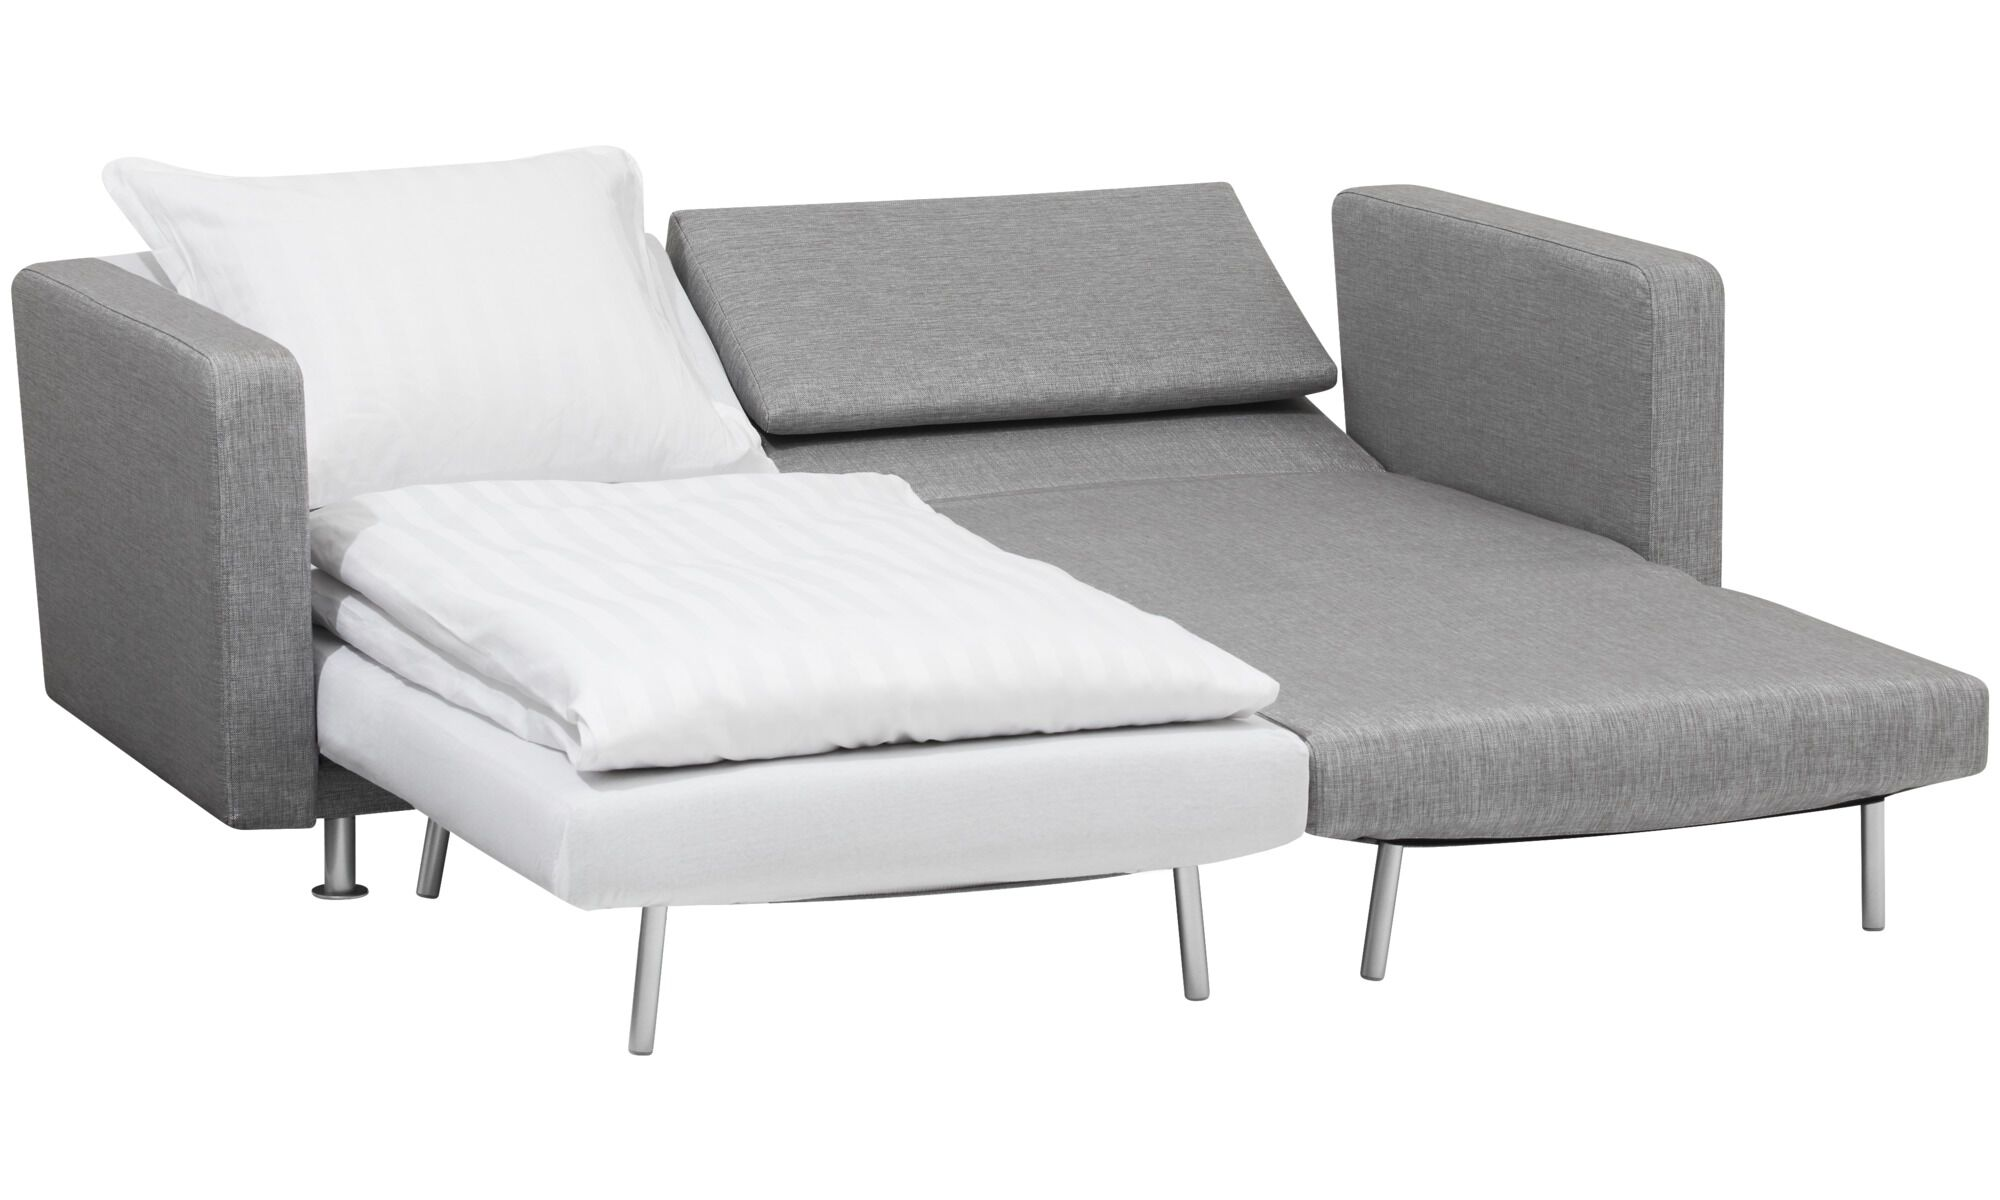 Sofa Beds   Melo 2 Sofa With Reclining And Sleeping Function   Grey   Fabric